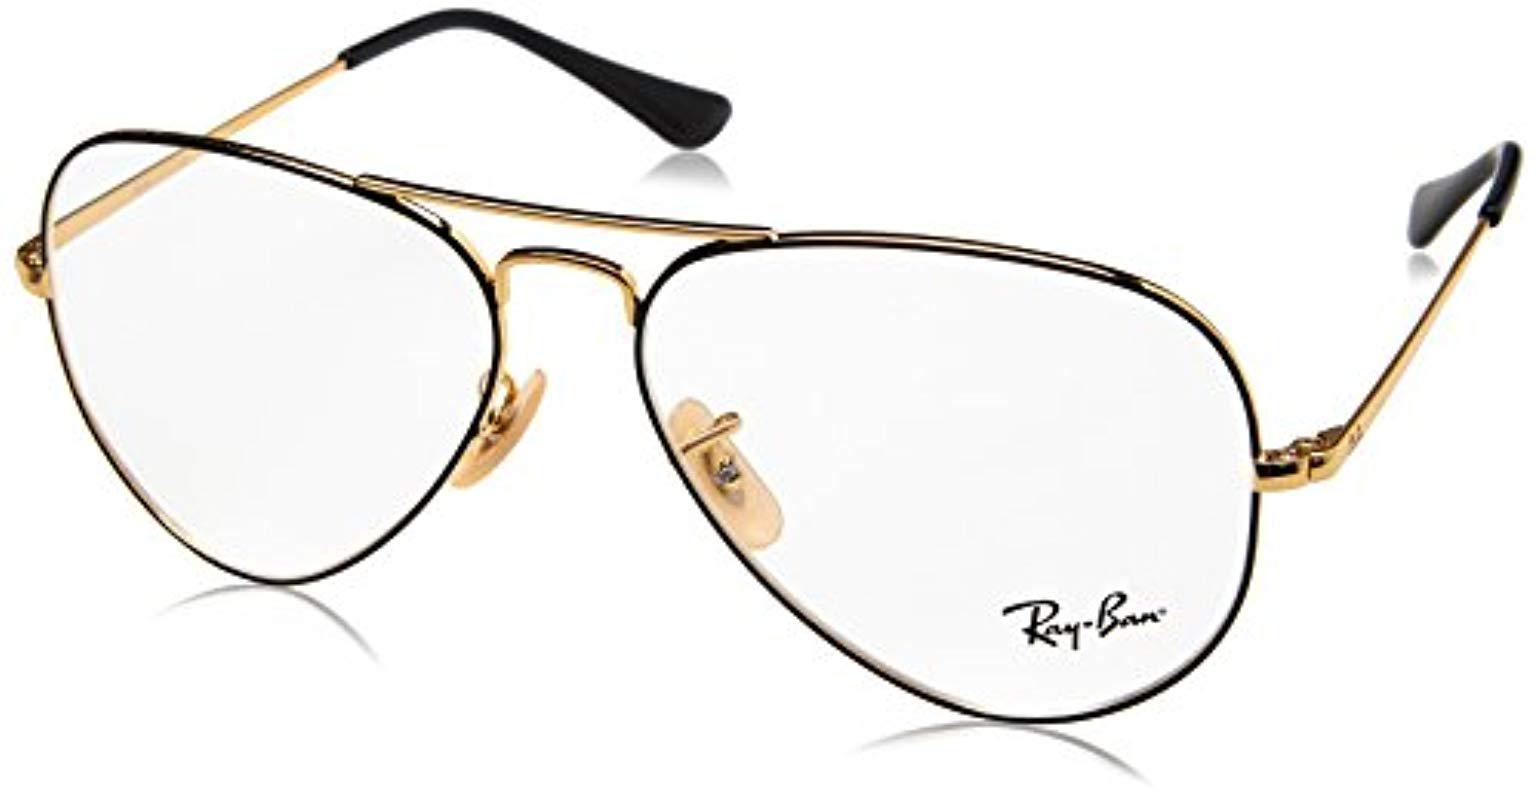 440401d253 Ray-Ban Rx6489 Aviator Glasses In Black Gold Rx6489 2946 58 in ...